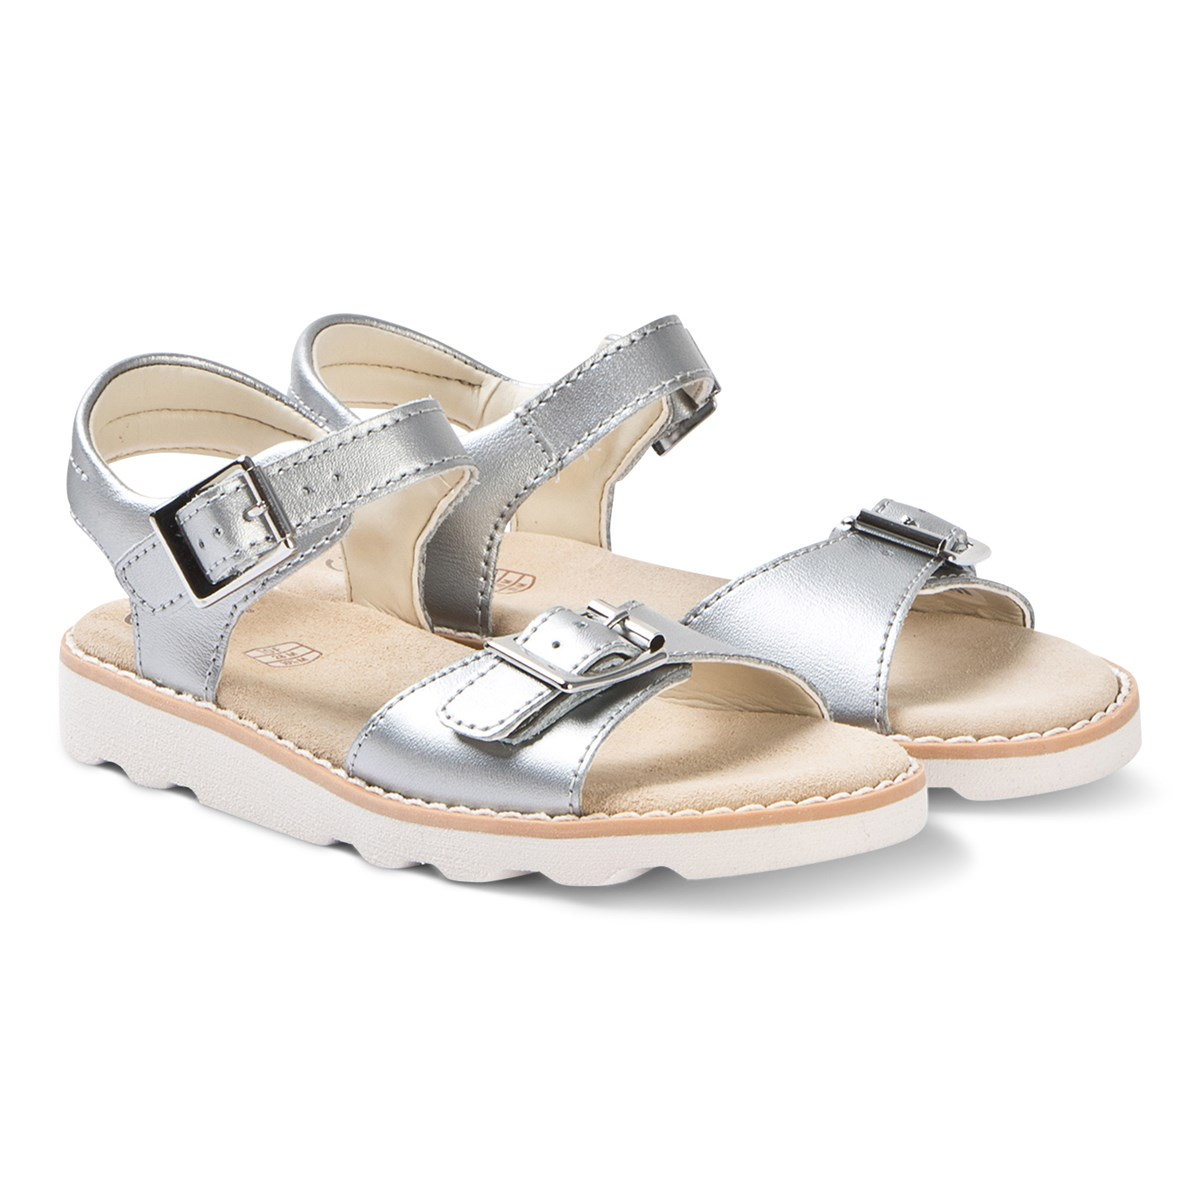 Clarks Silver Leather Crown Bloom Sandals